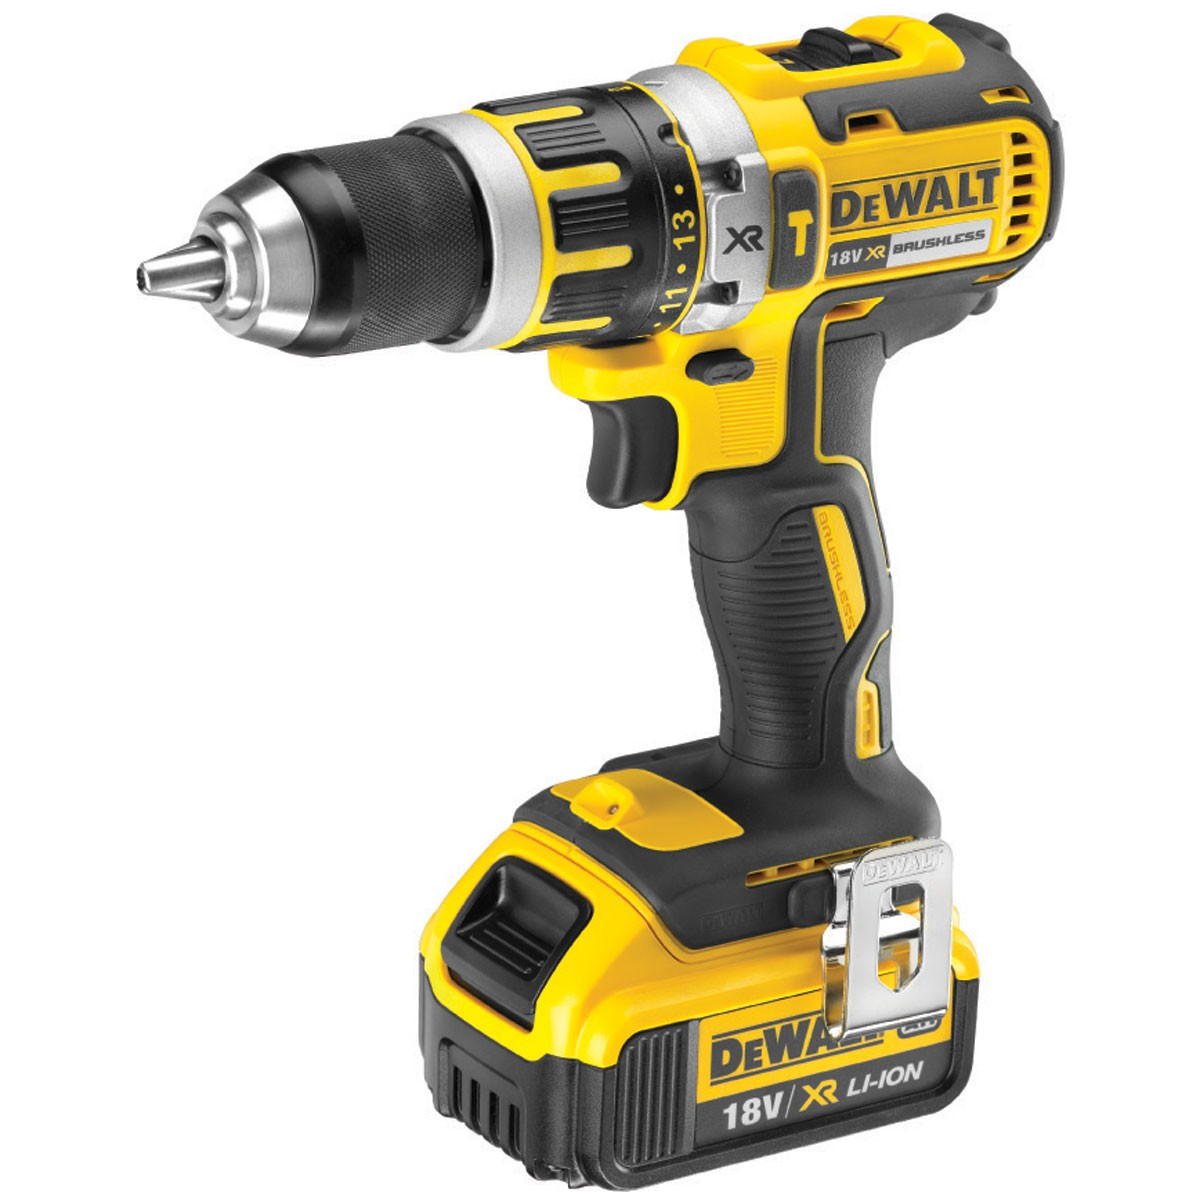 DEWALT DCD795M1 18V XR BRUSHLESS COMPACT COMBI DRILL WITH 4.0AH LI-ION BATTERY